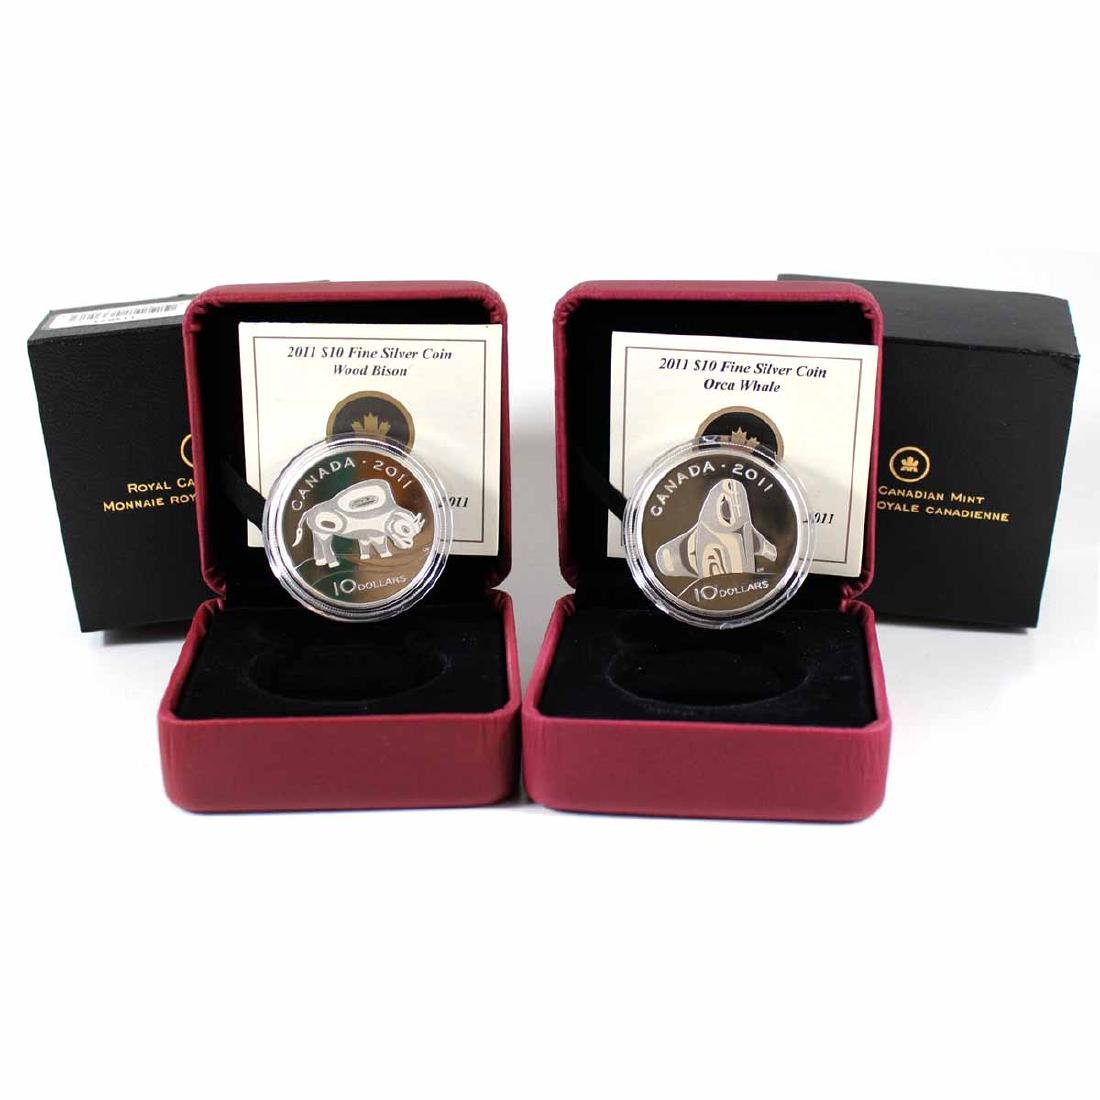 2011 Canada $10 Orca & Wood Bison Fine Silver Coins